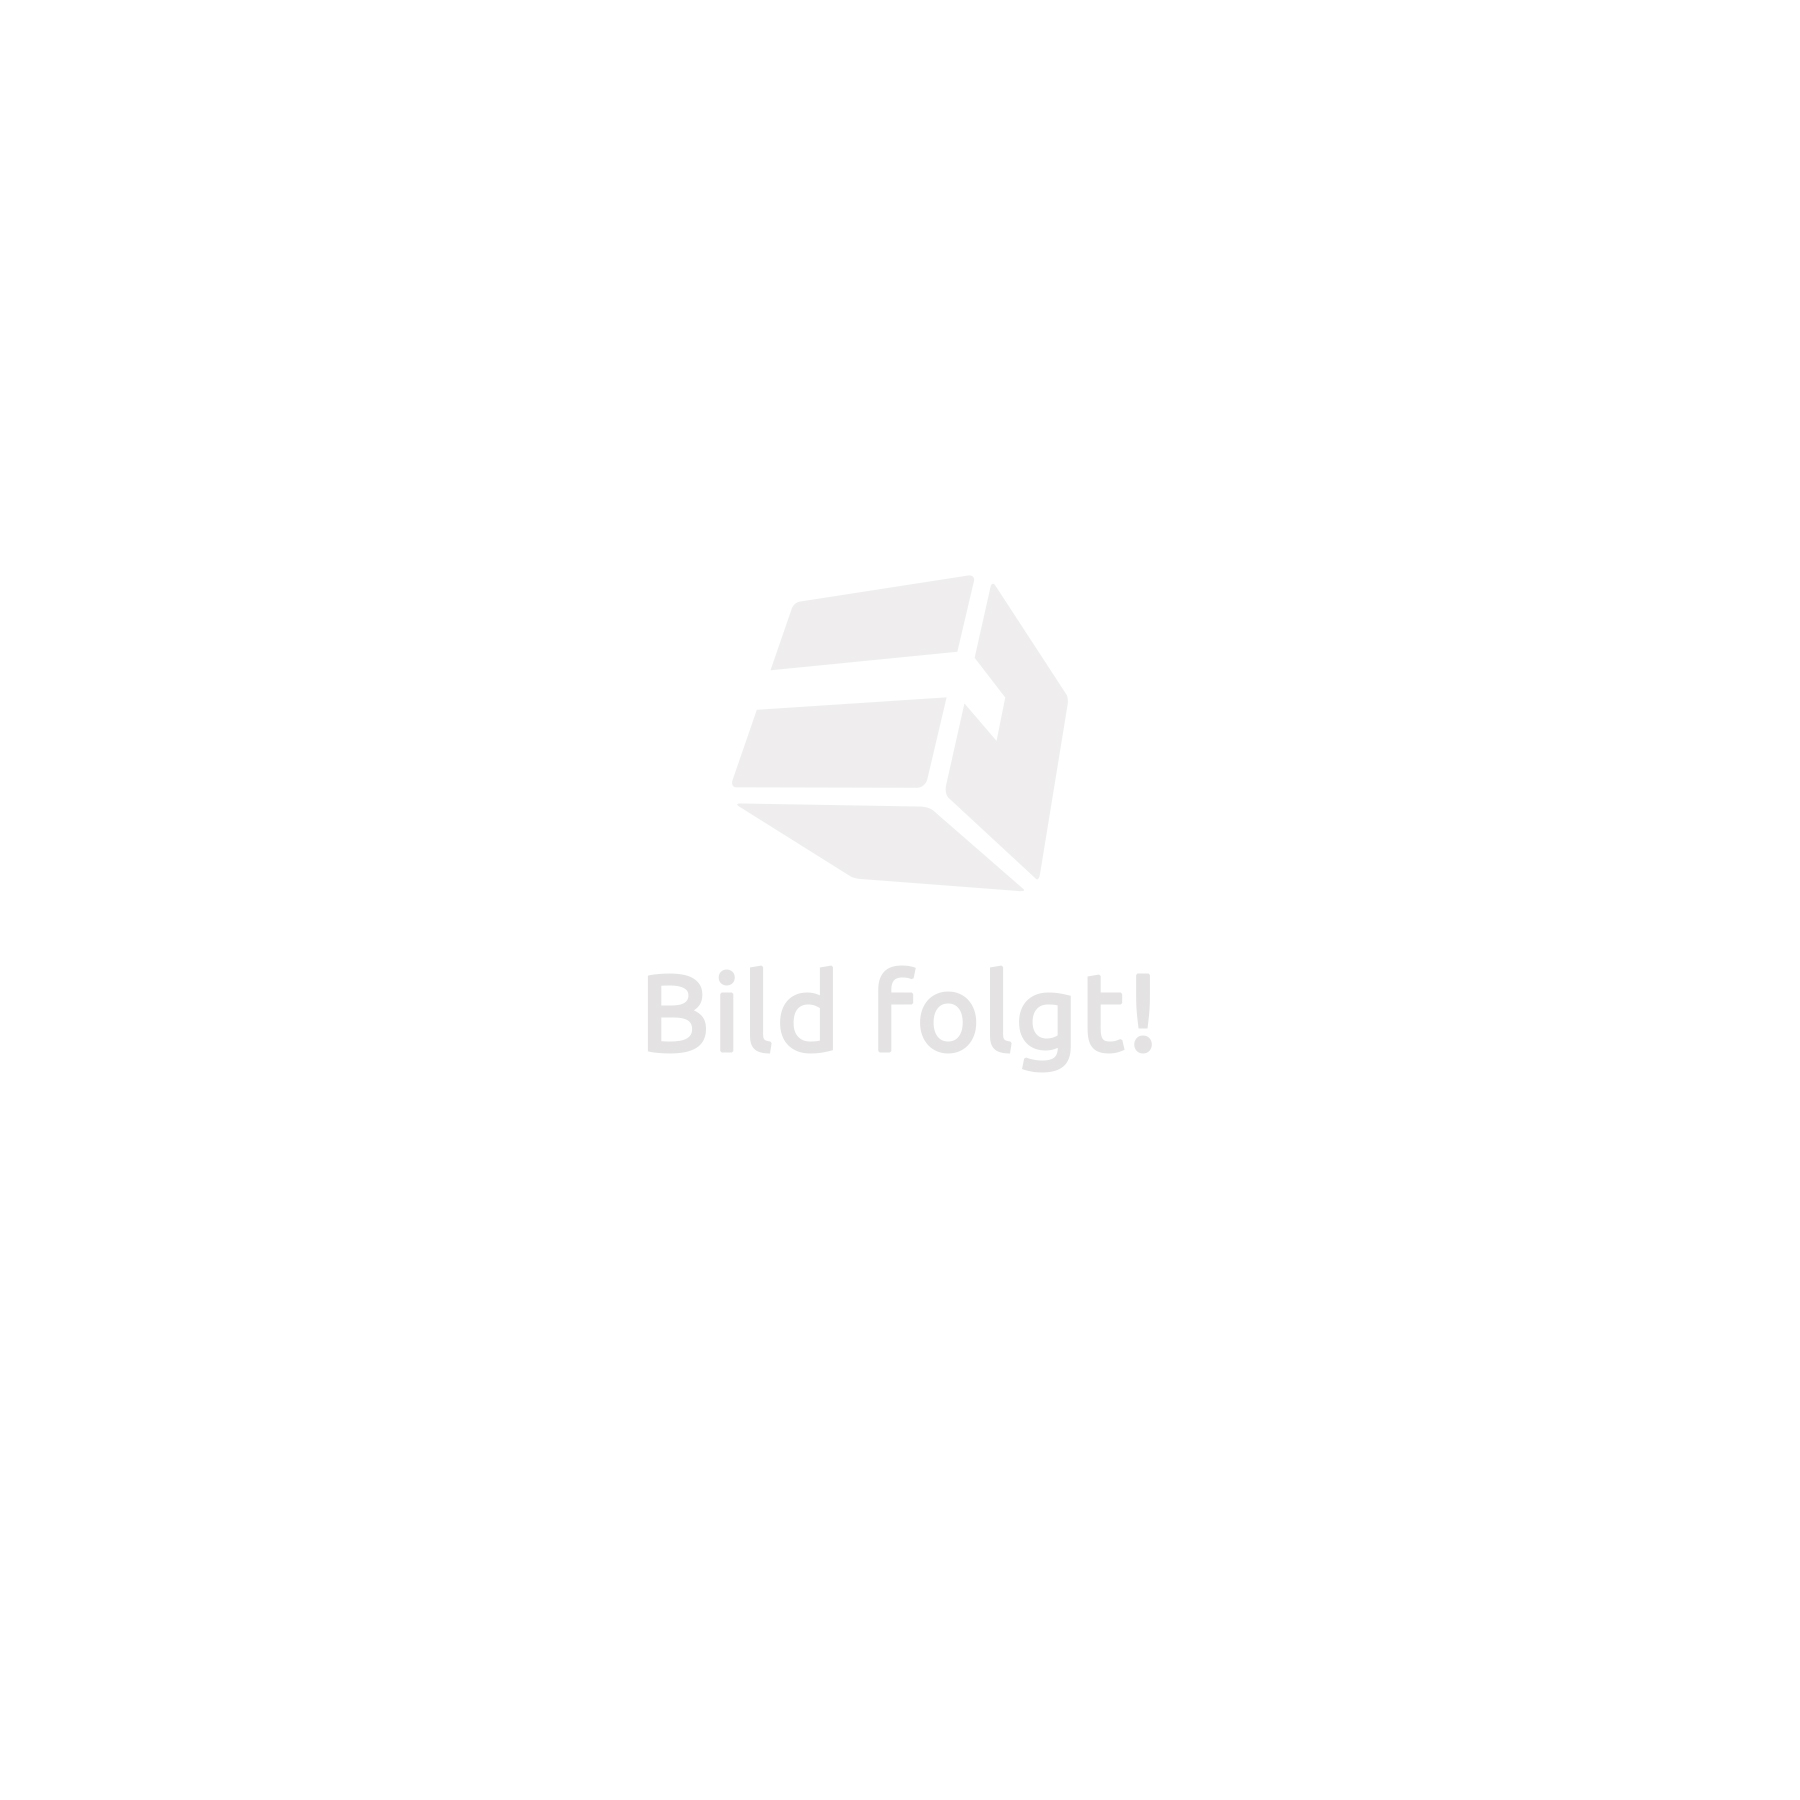 Support mural tv muraux pivotant et inclinable orientable - Support tv 107 cm orientable ...